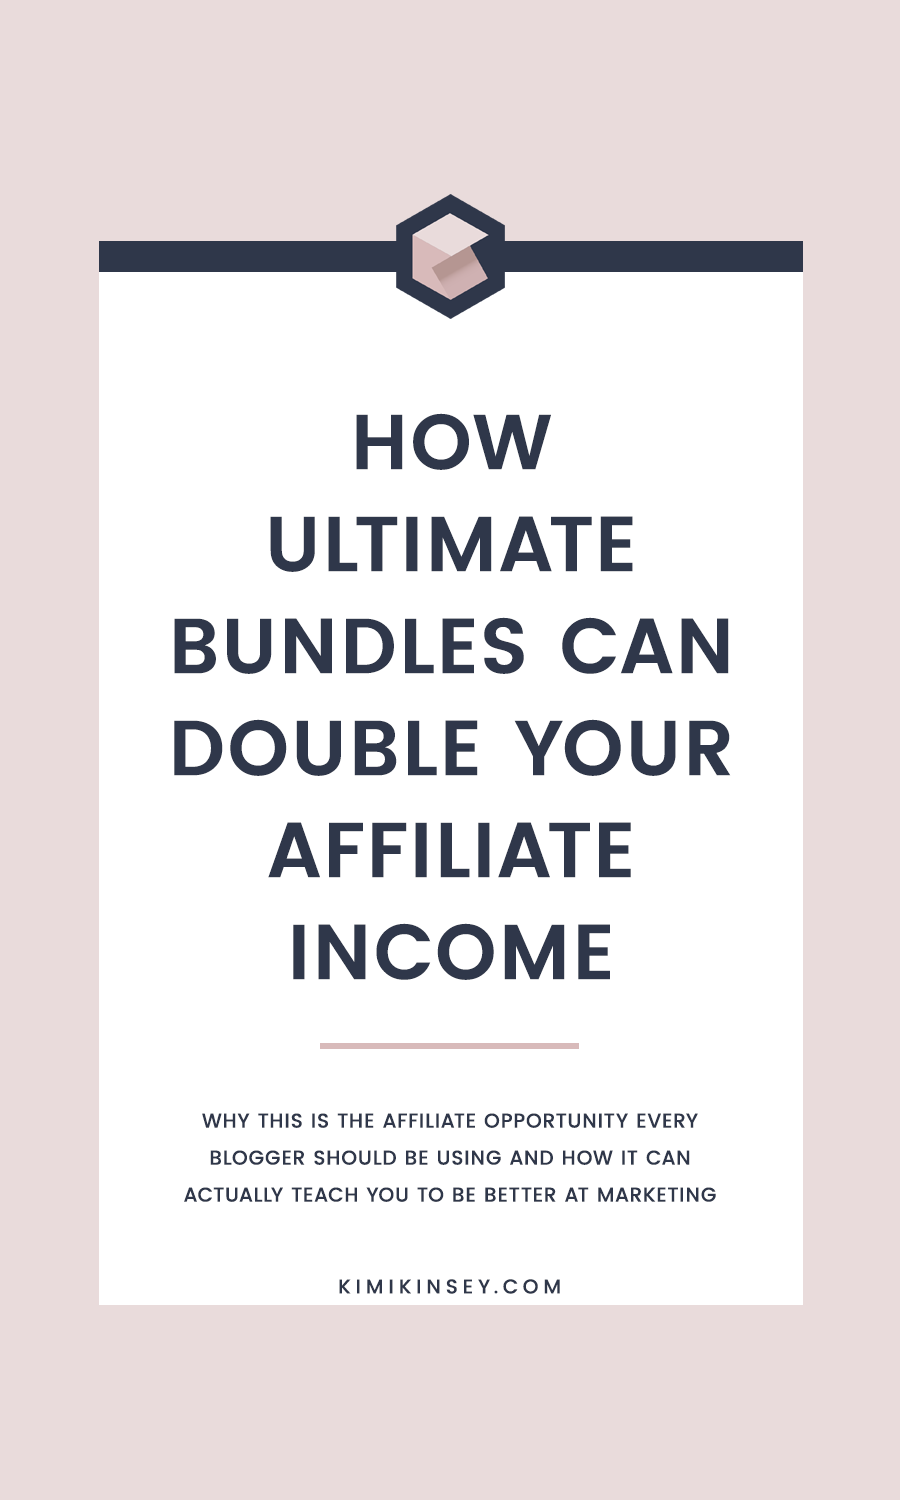 How Ultimate Bundles can double your Affiliate income